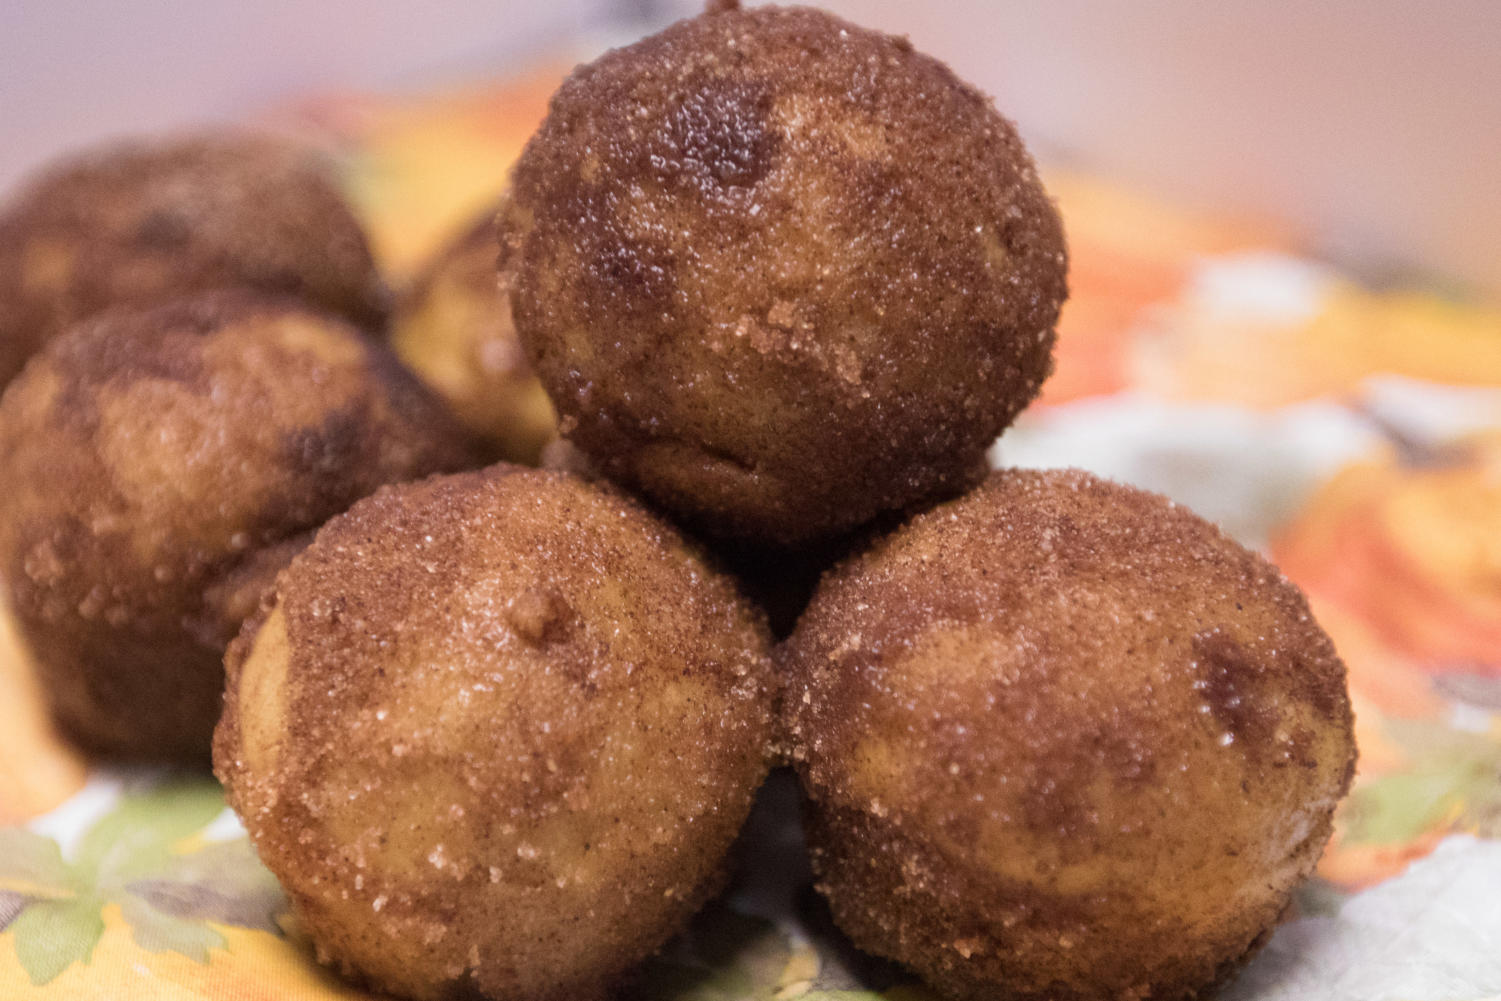 These donut holes are a great way to spice up the fall season. (Claire Burkett/ The Talon News)